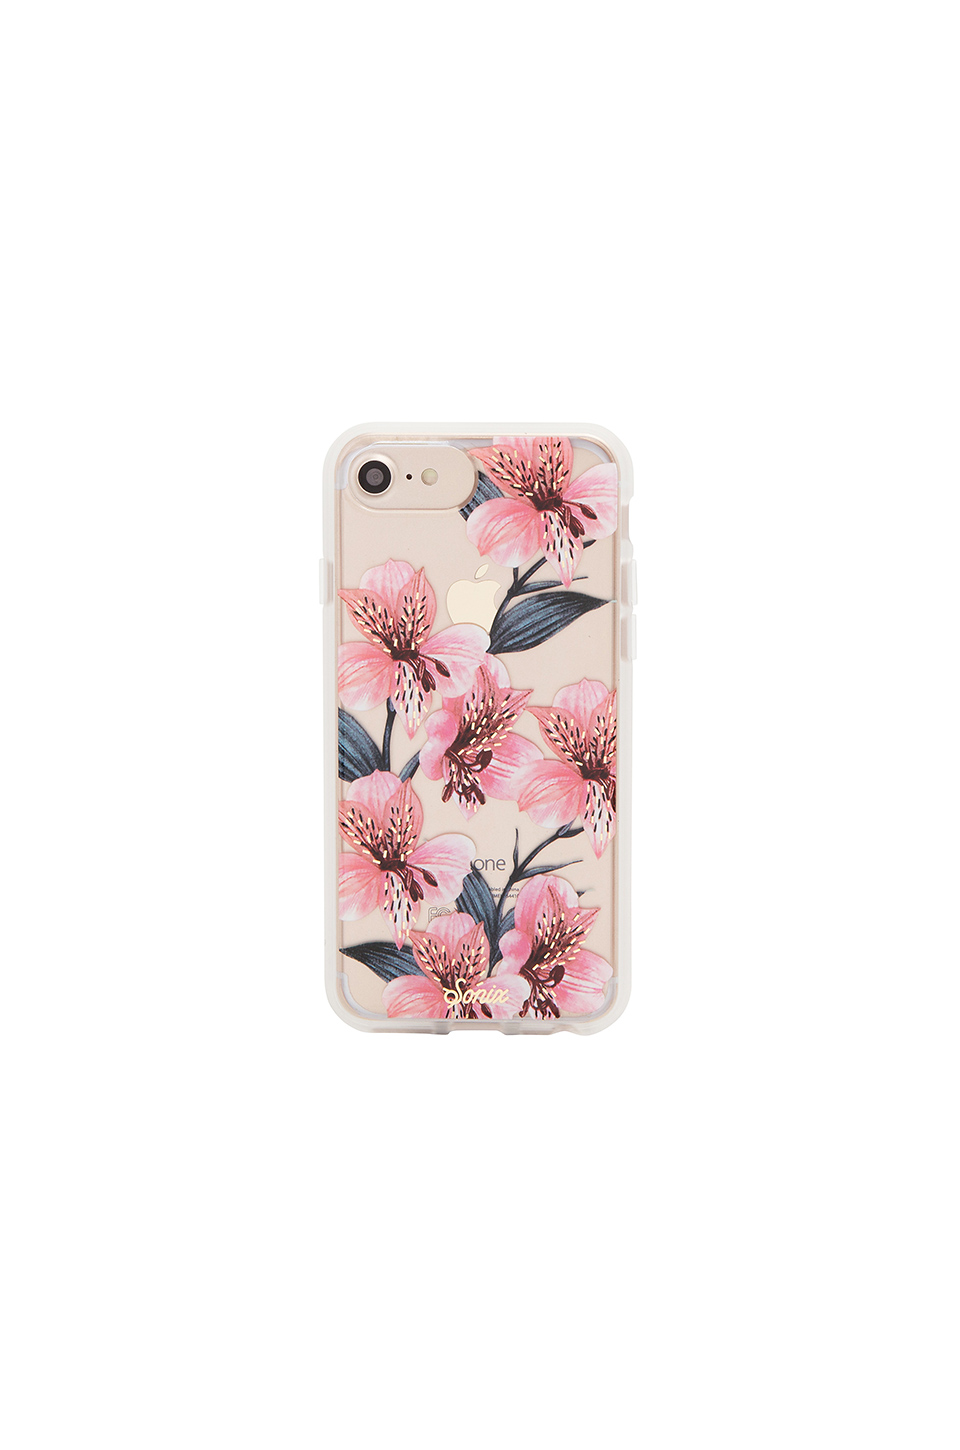 Sonix Tiger Lily iPhone 6/7/8 Case in